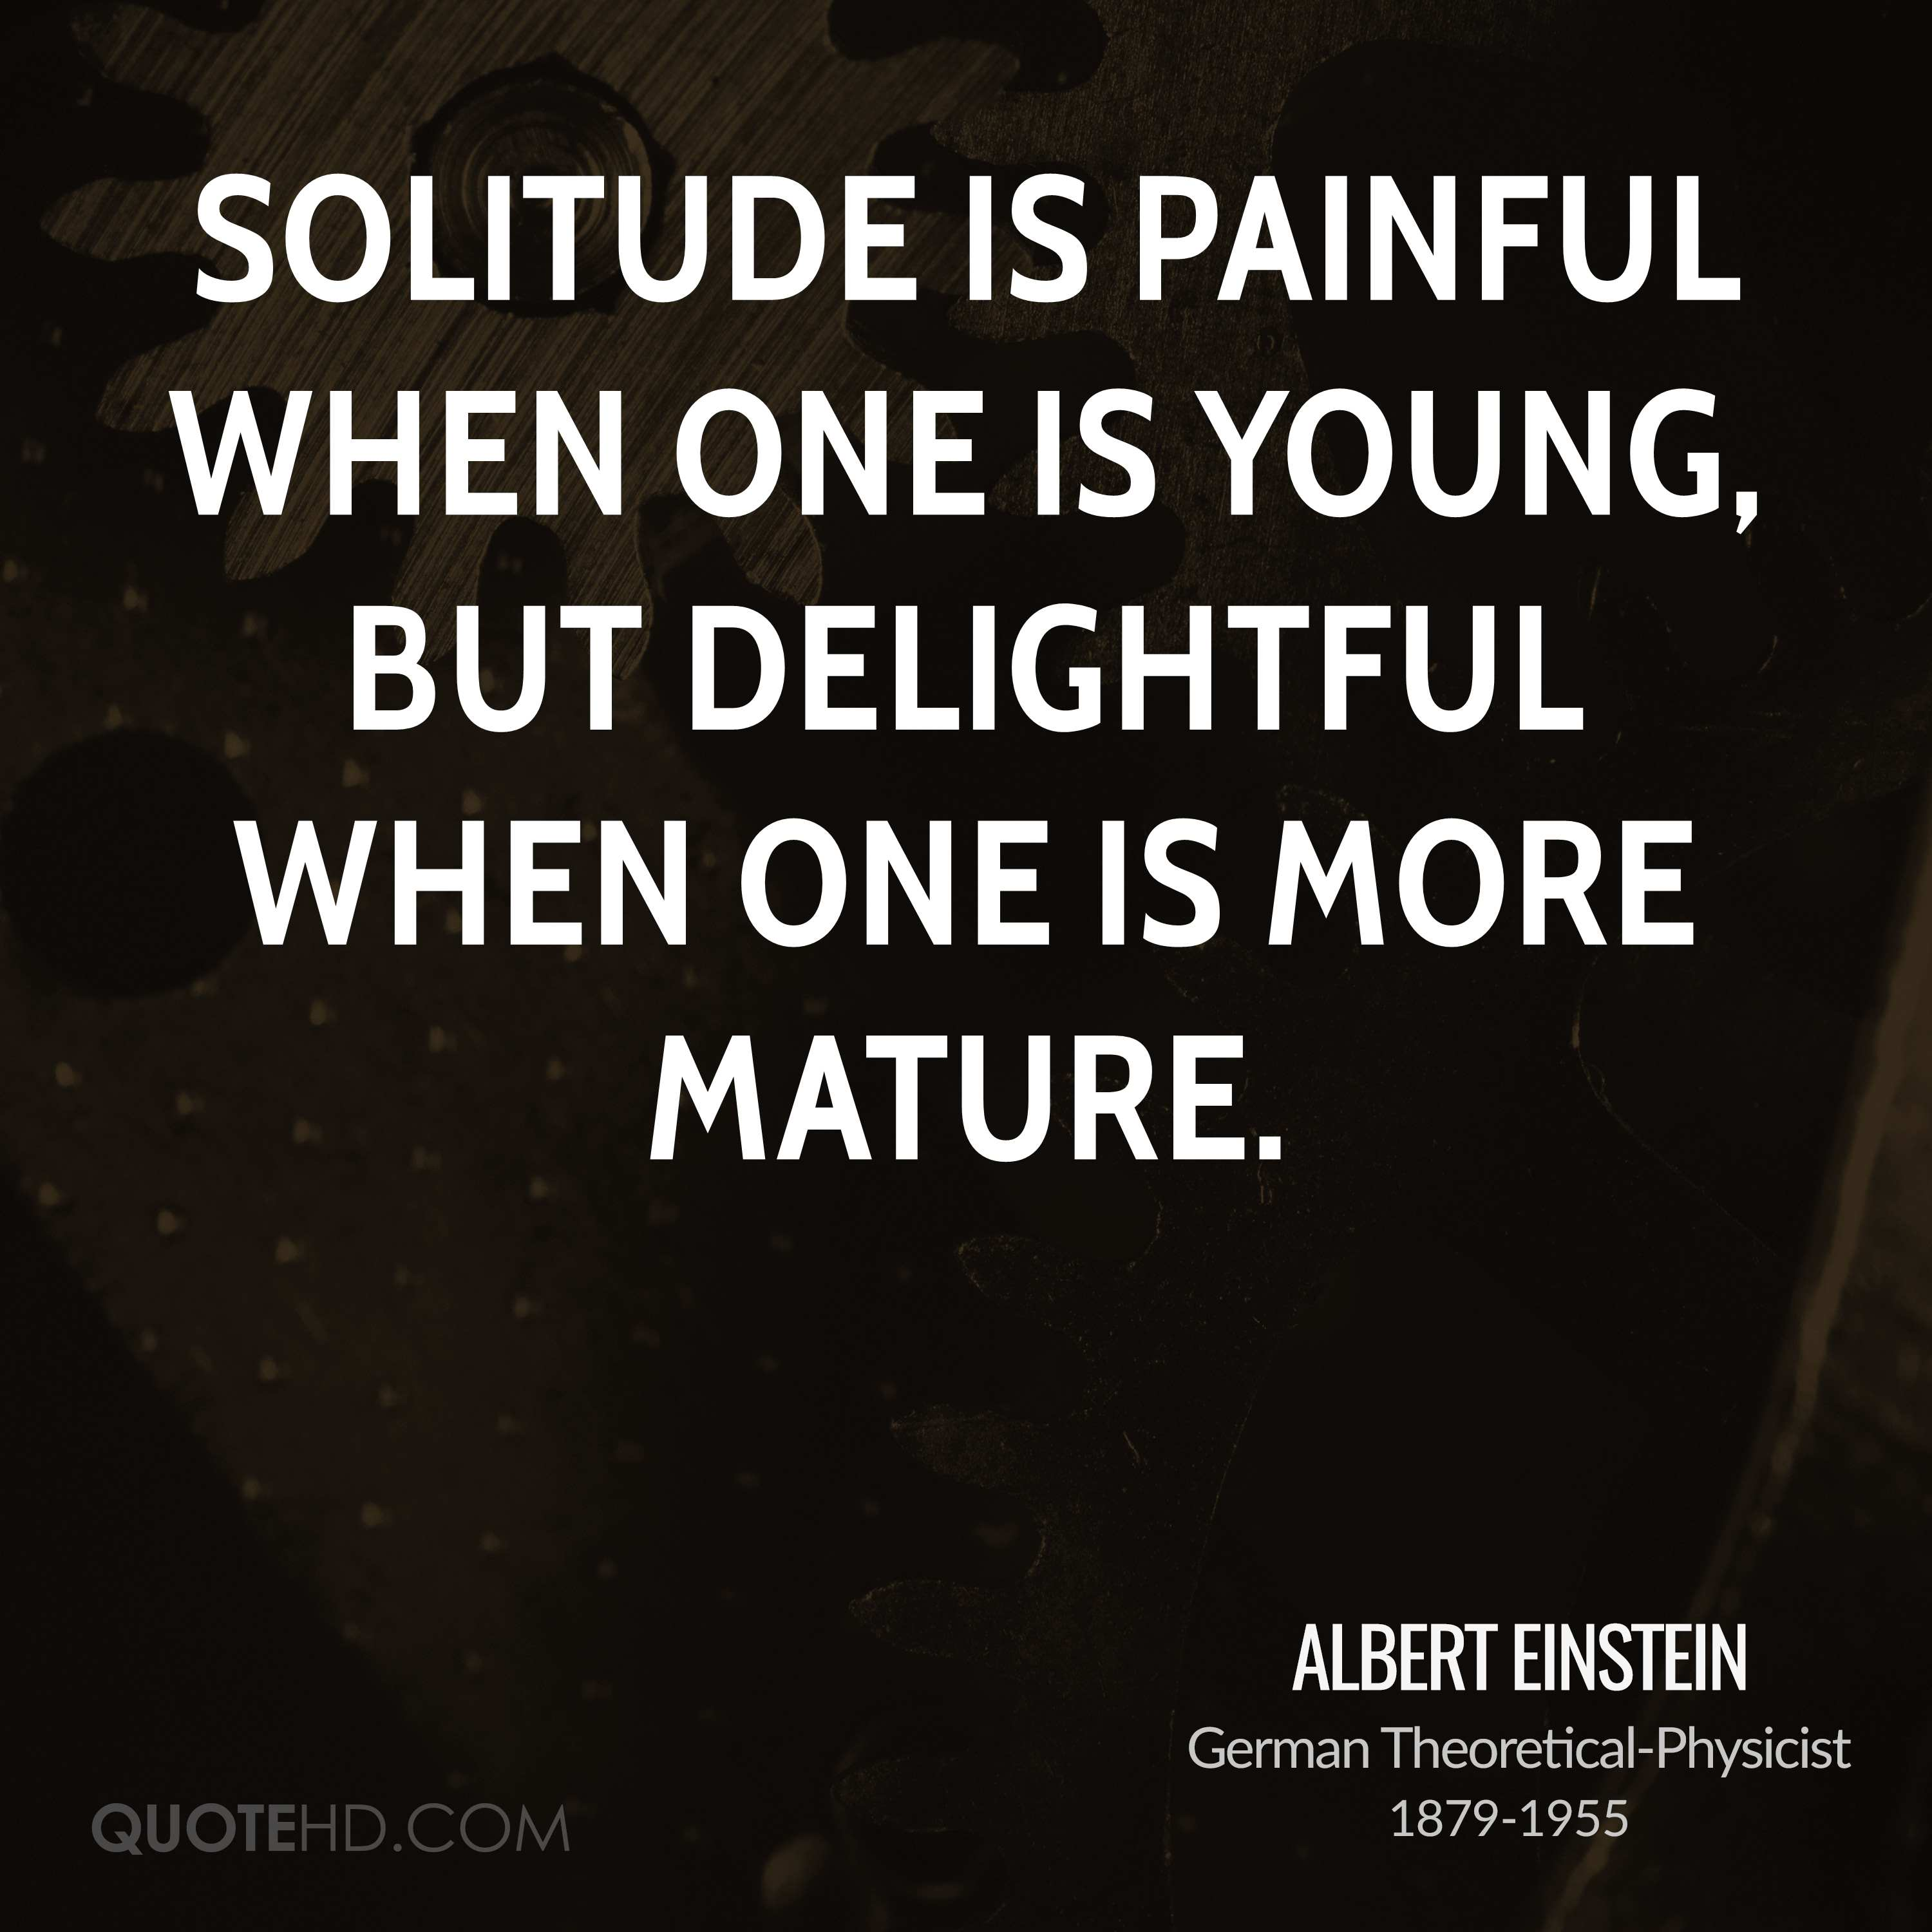 Quotes On Solitude Solitude Quotes  Page 1  Quotehd